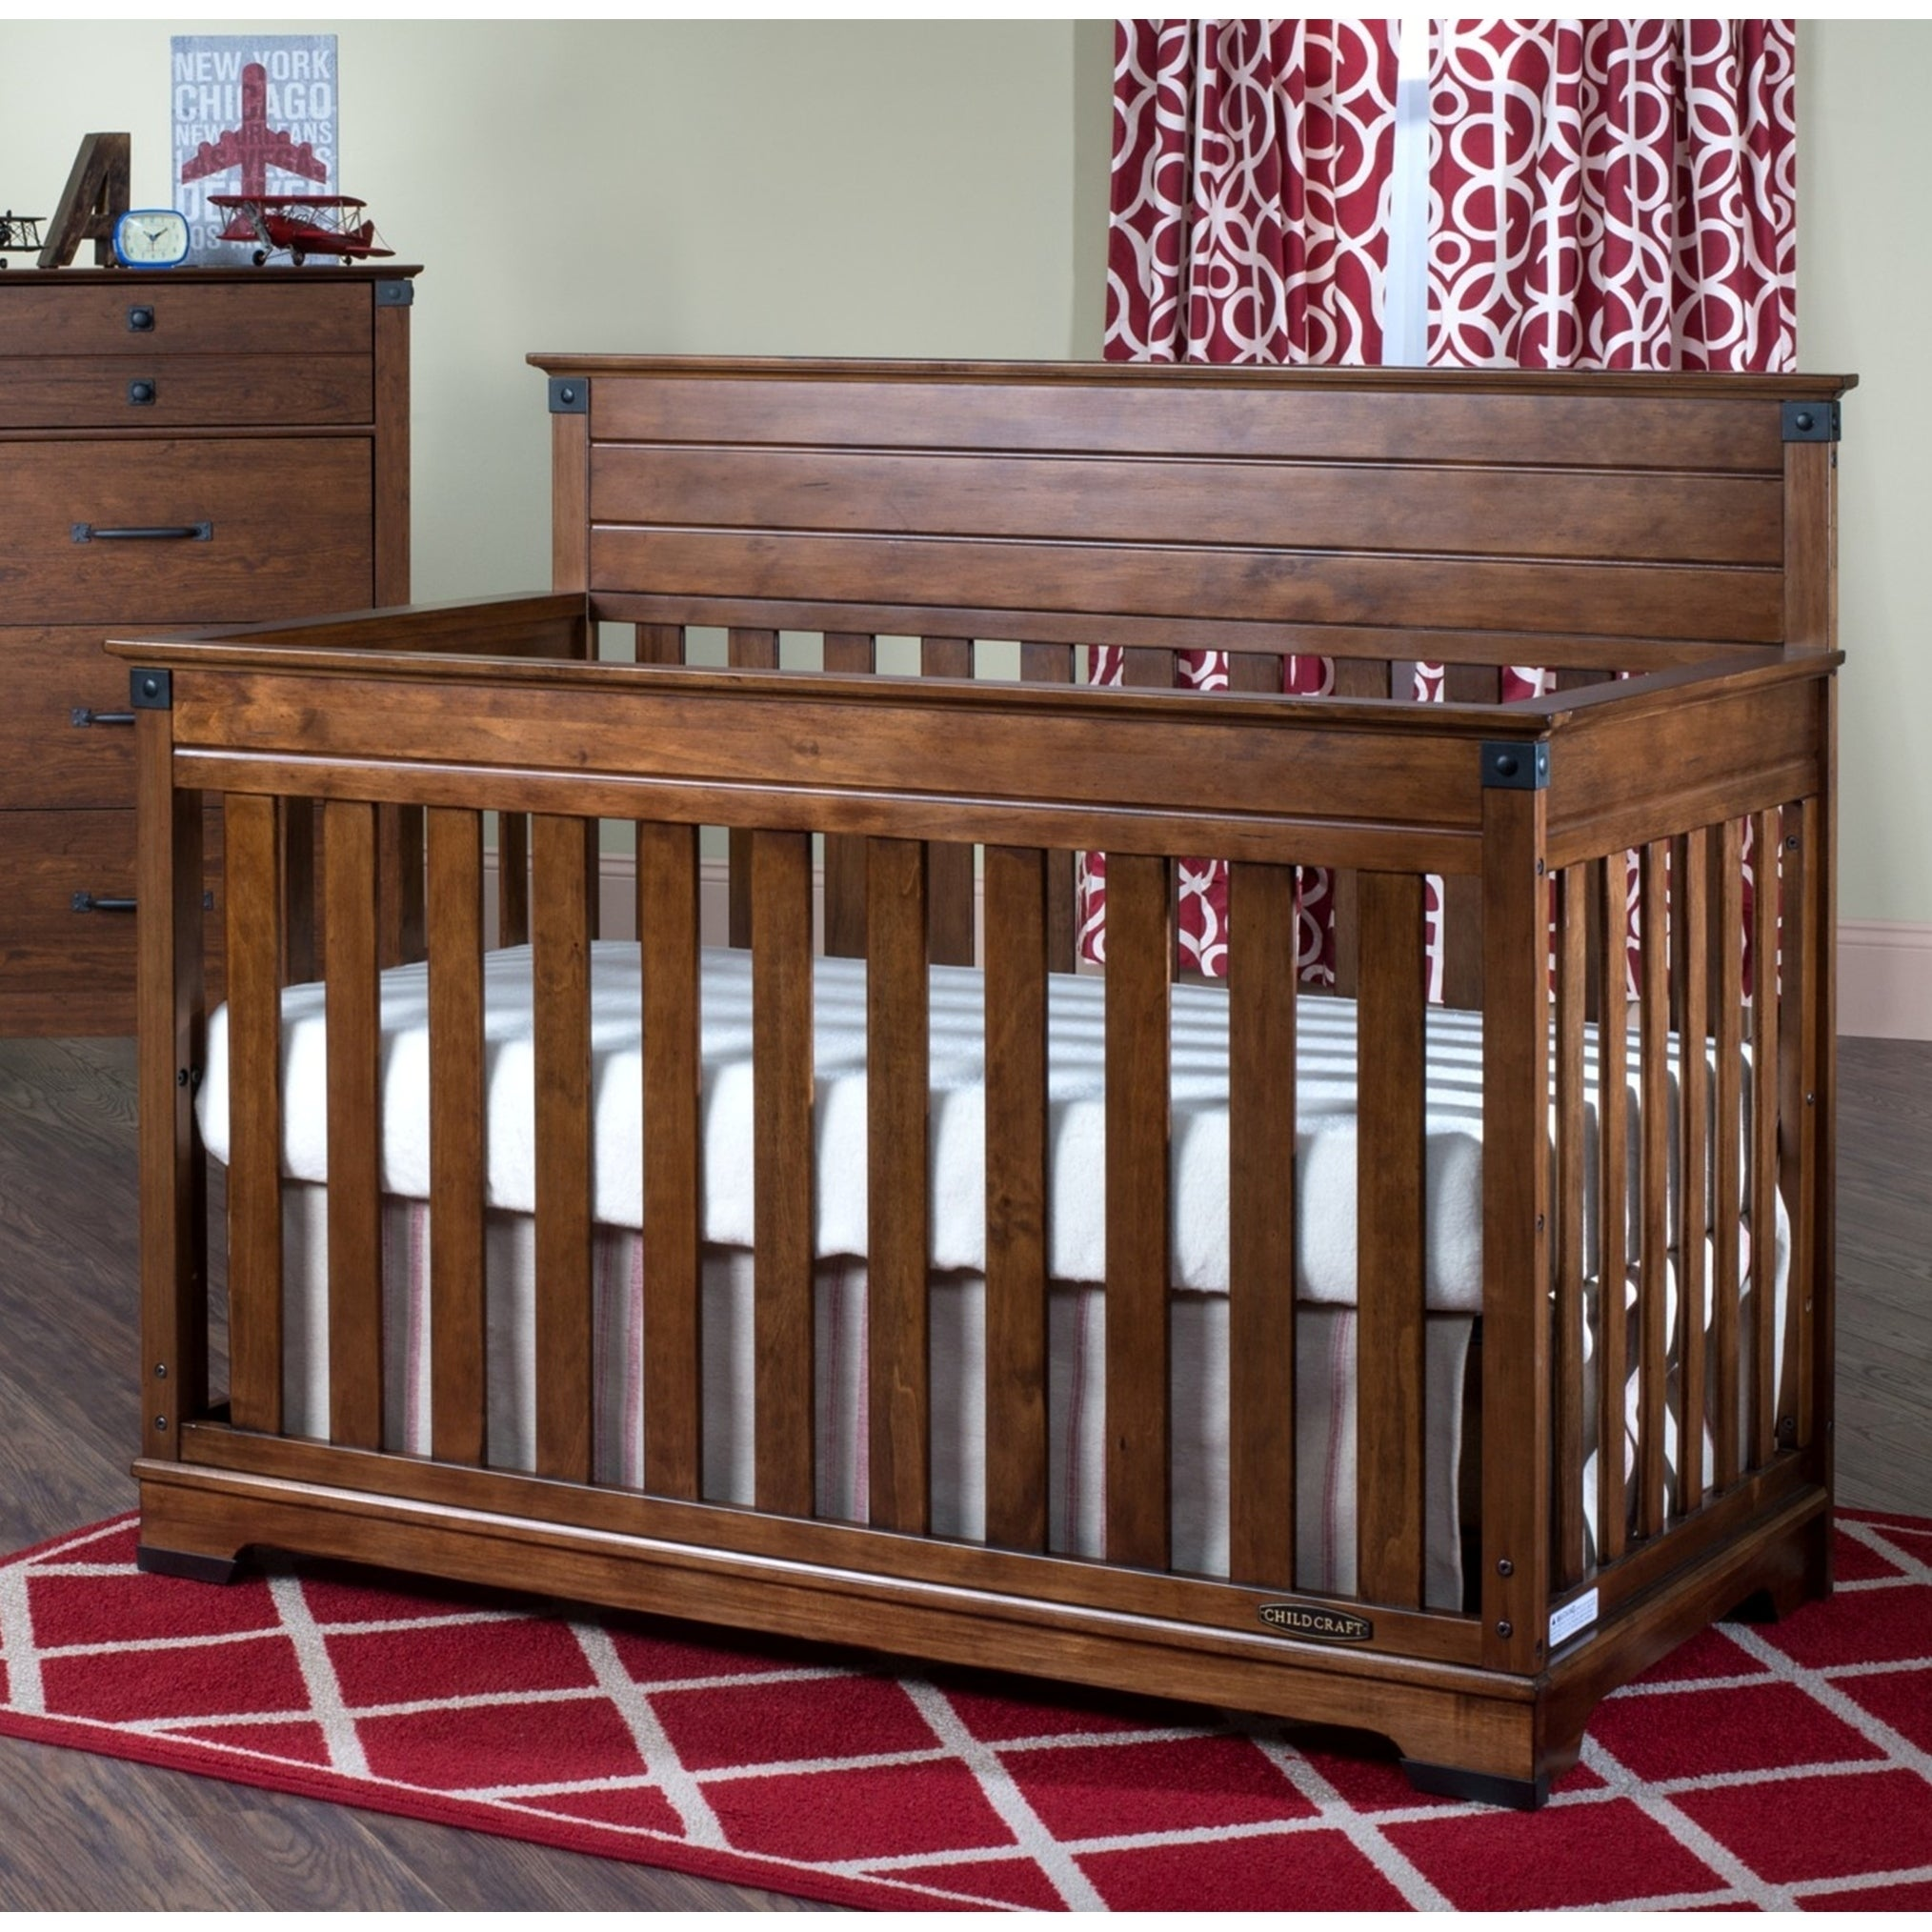 blankets with reviews babies cherry at baby excellent as size rustic reviewsr purchase cribs and toddler davinci free mattress crib r us convertible of babiesrus kalani full a